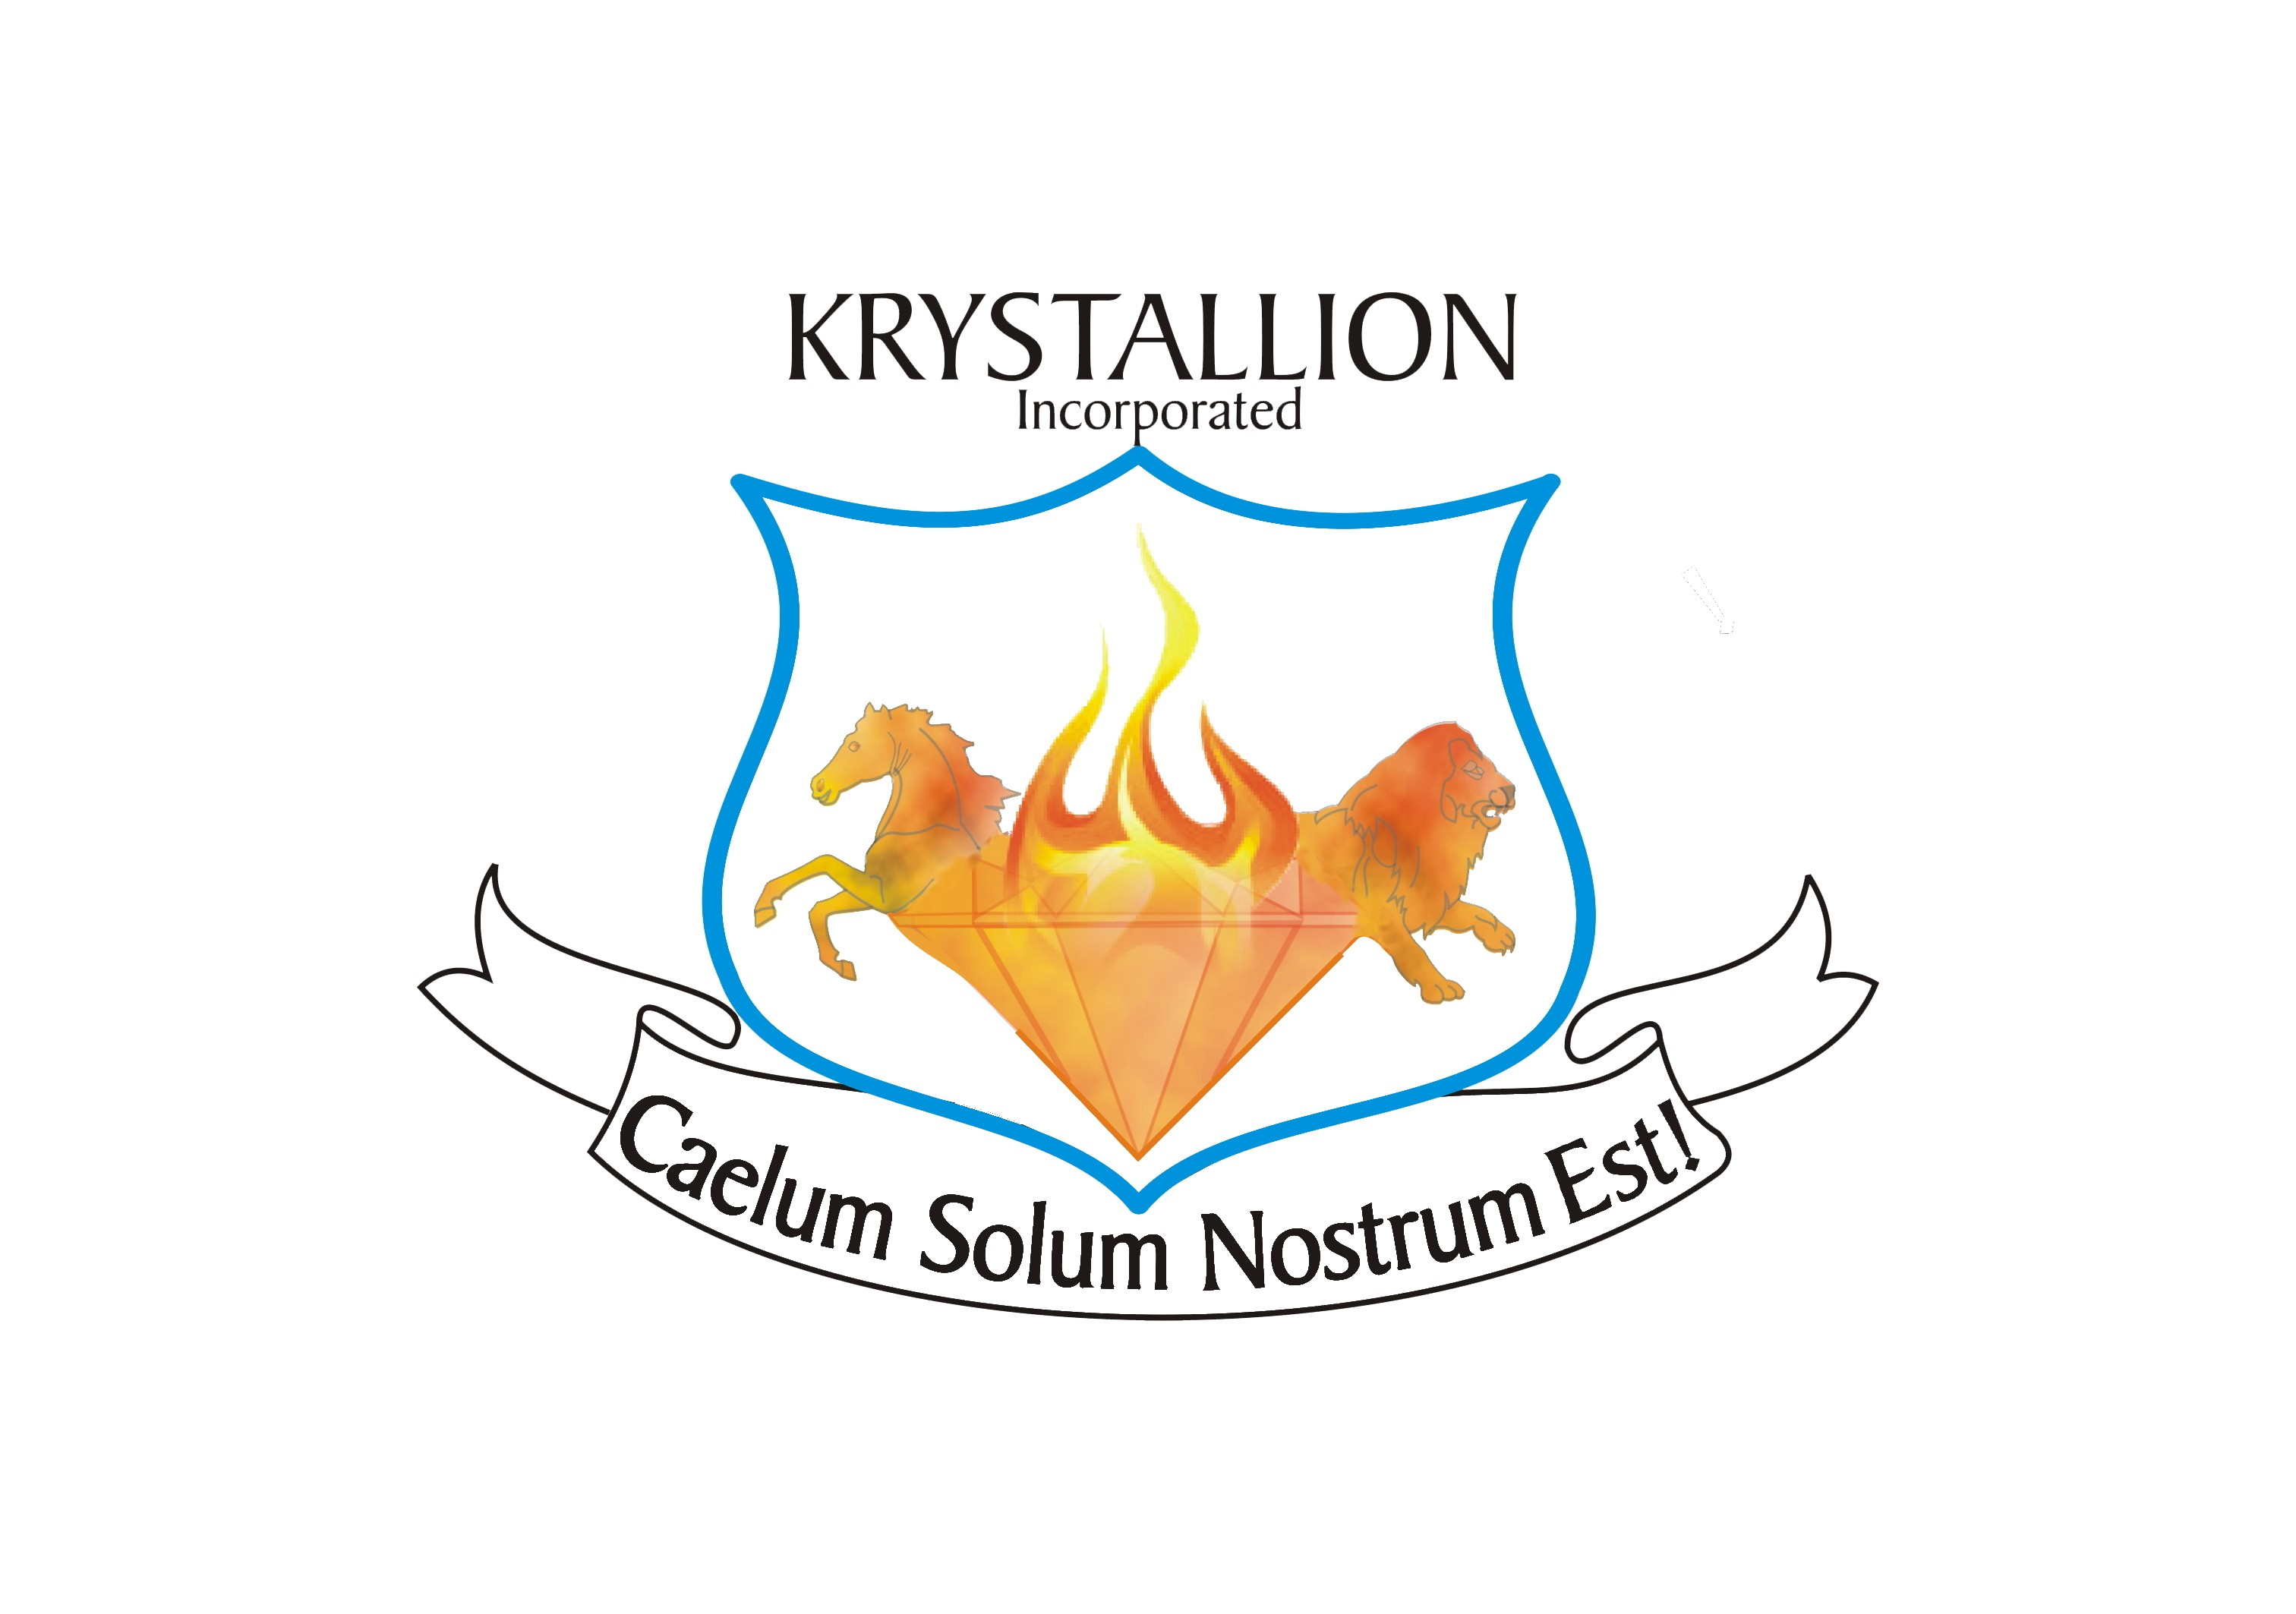 Krystallion Incorporated